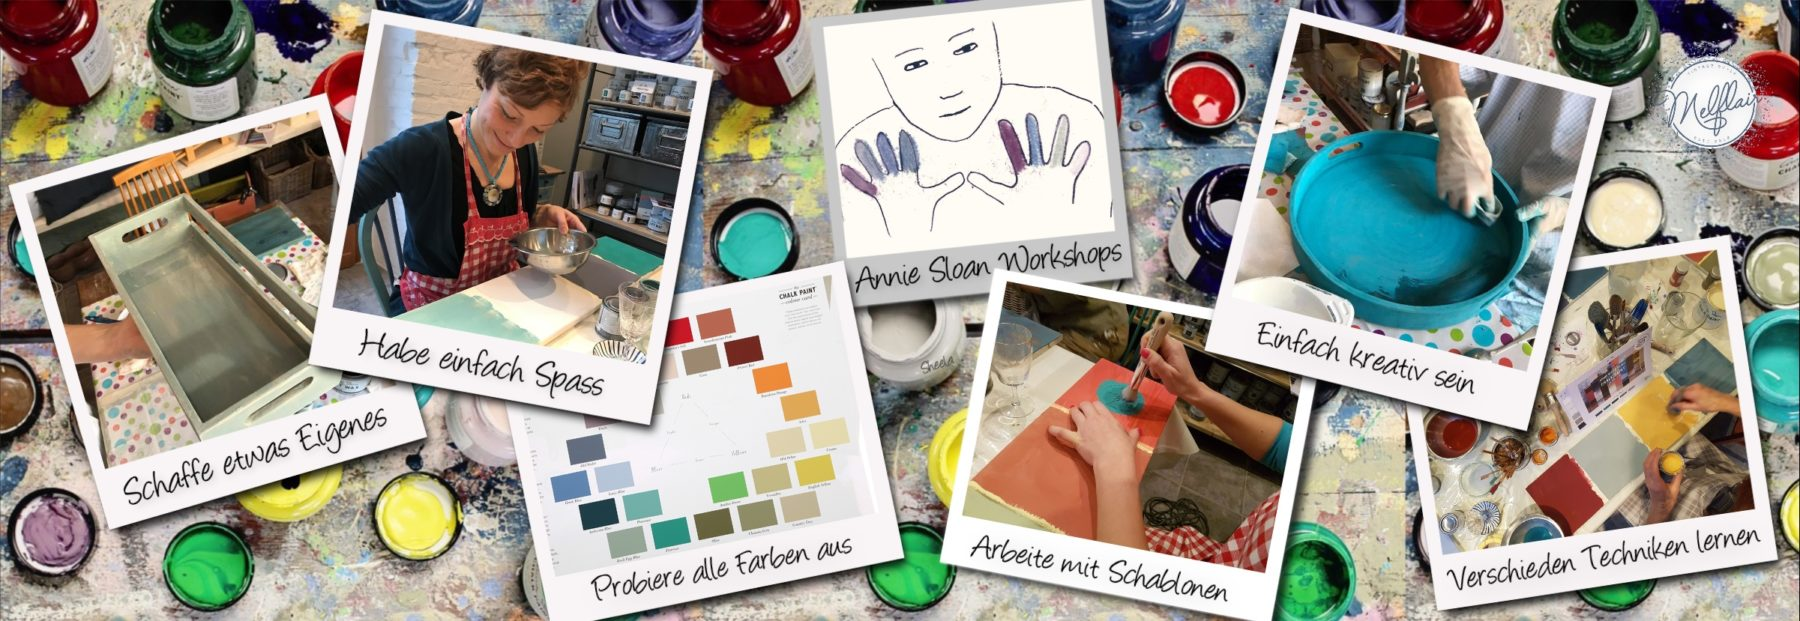 Workshops bei Melflair